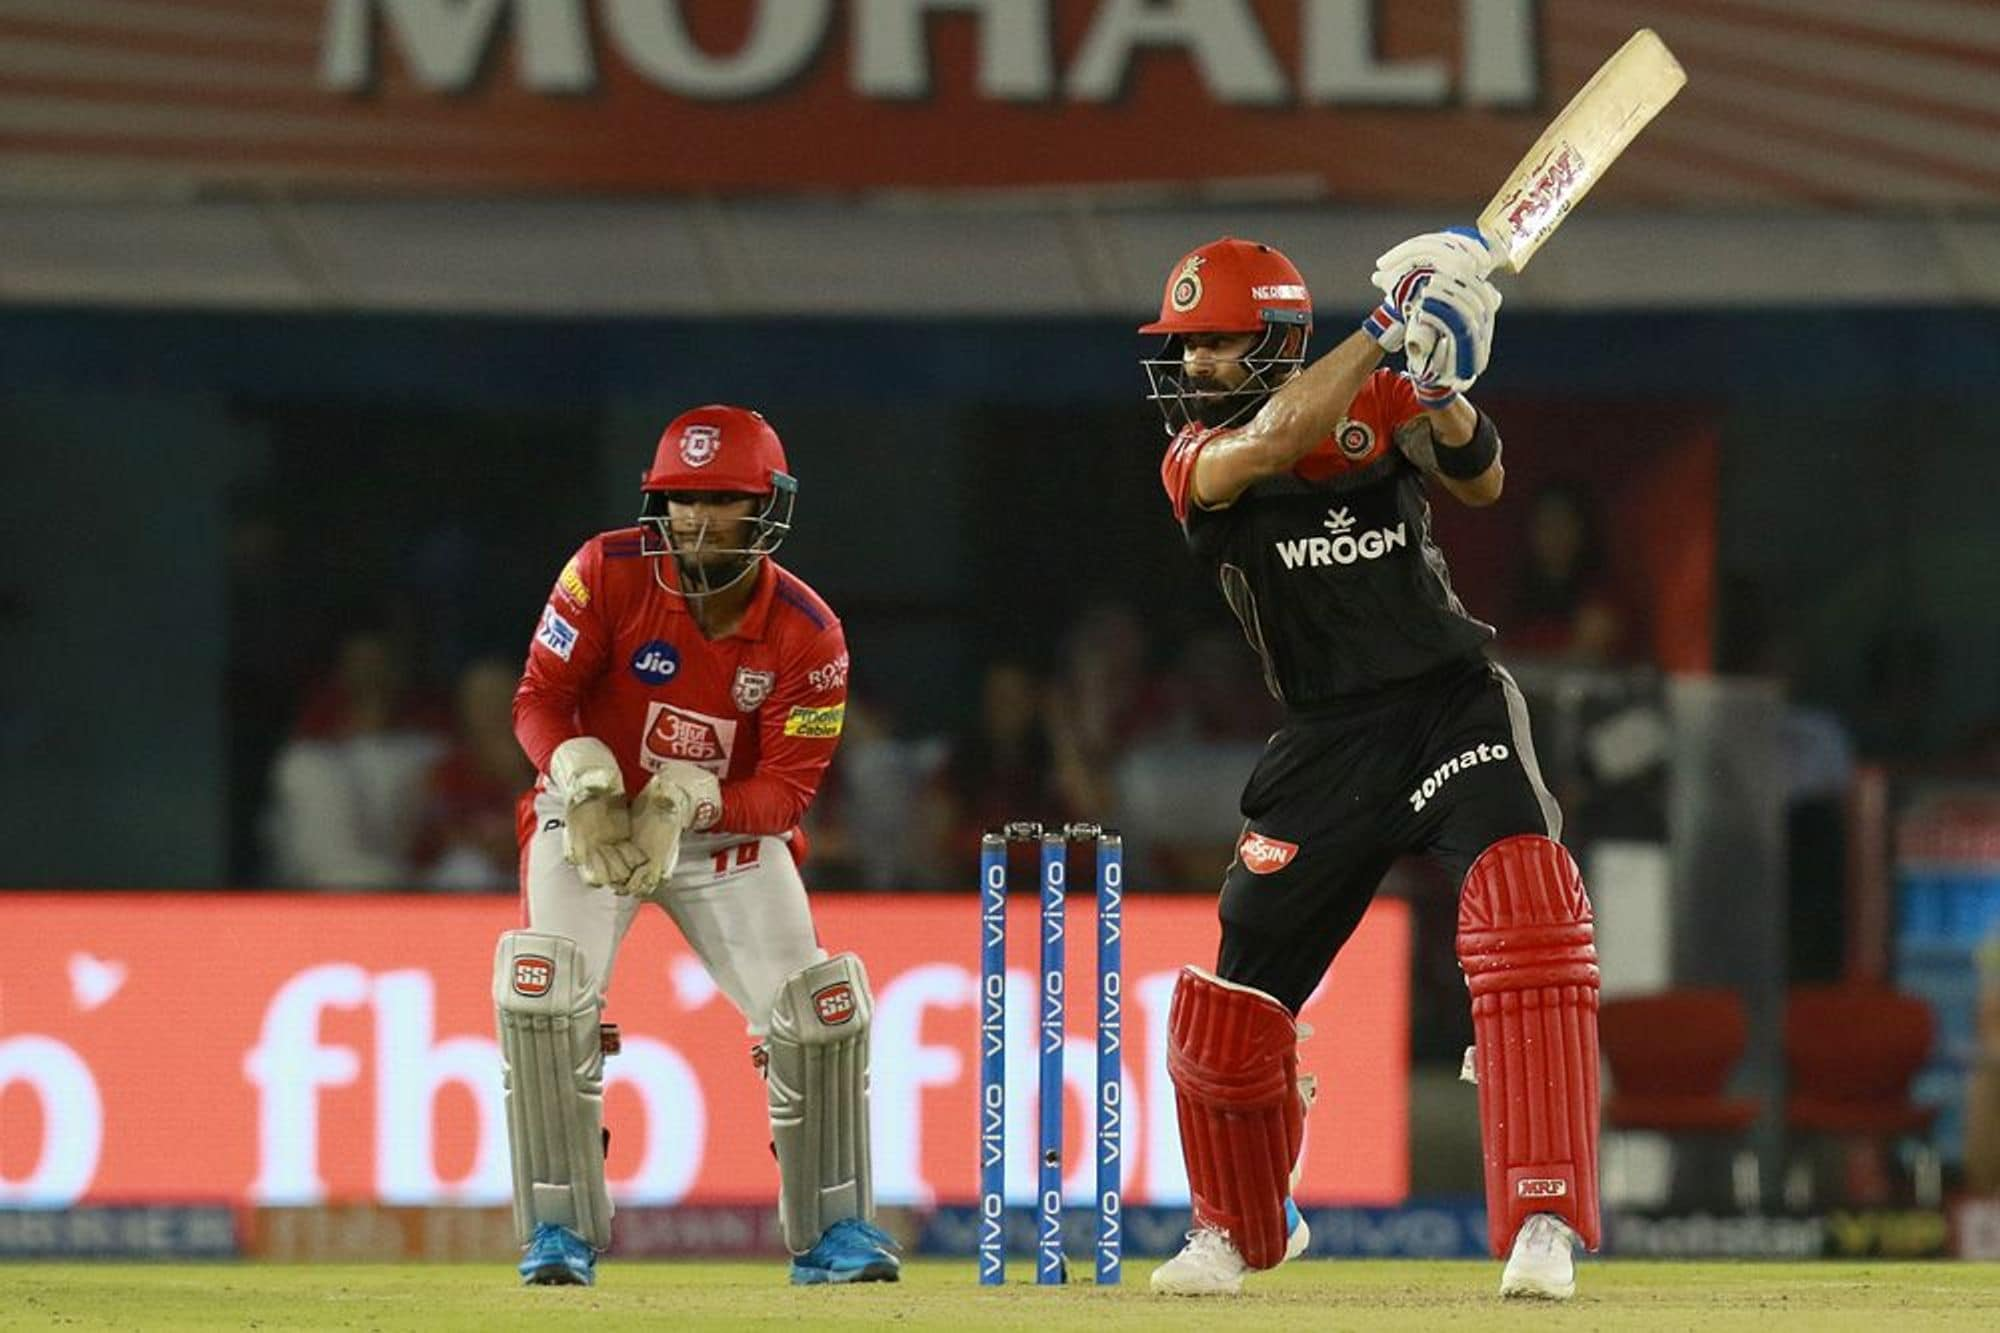 In Pics, Match 28, Kings XI Punjab vs Royal Challengers Bangalore